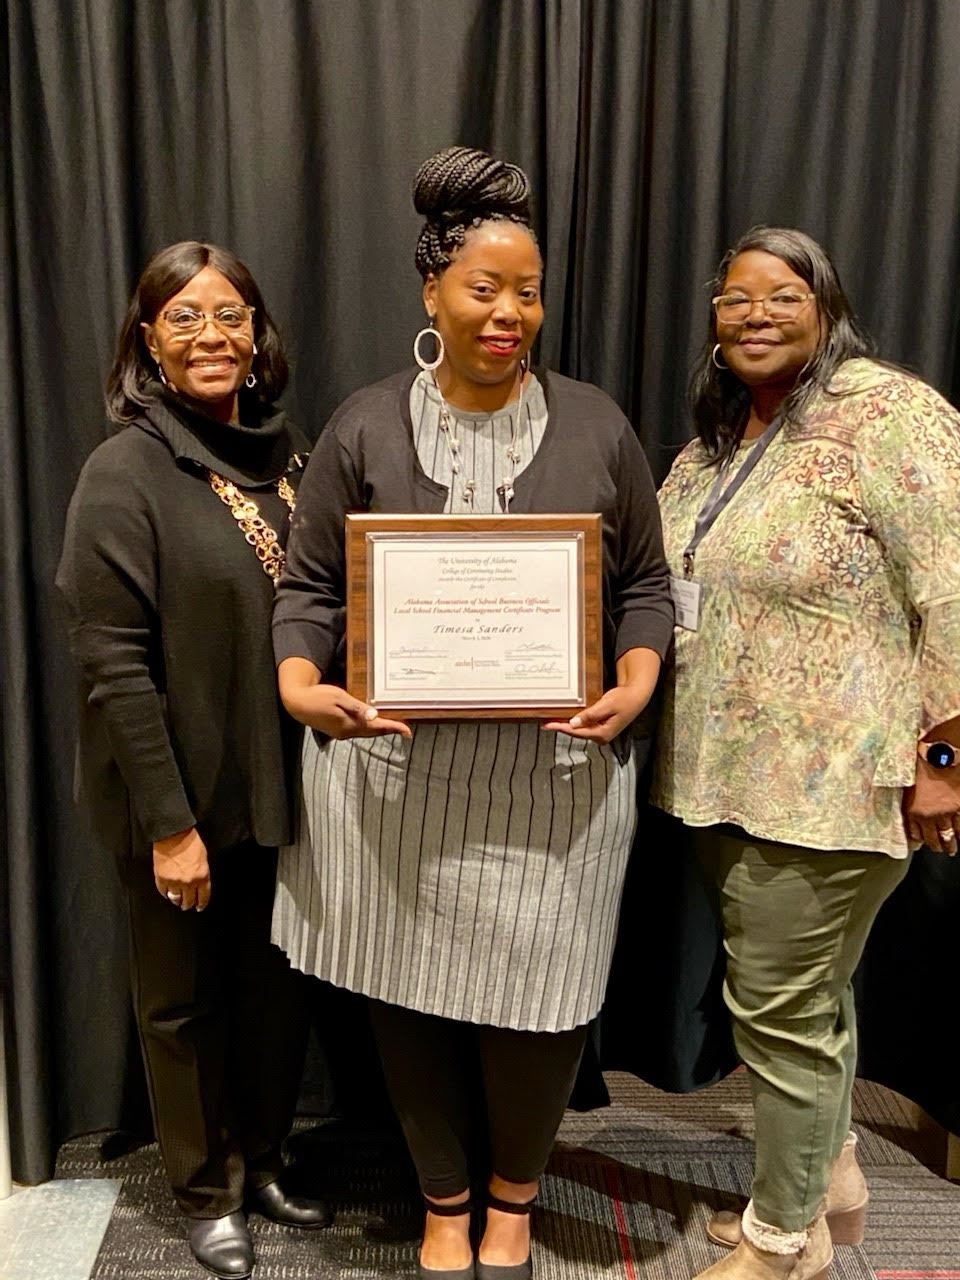 Ms. Timesa Sanders completed The Alabama Association of School Business Officials Local School Financial Management Certification Program from The University of Alabama. Great Job Timesa!!